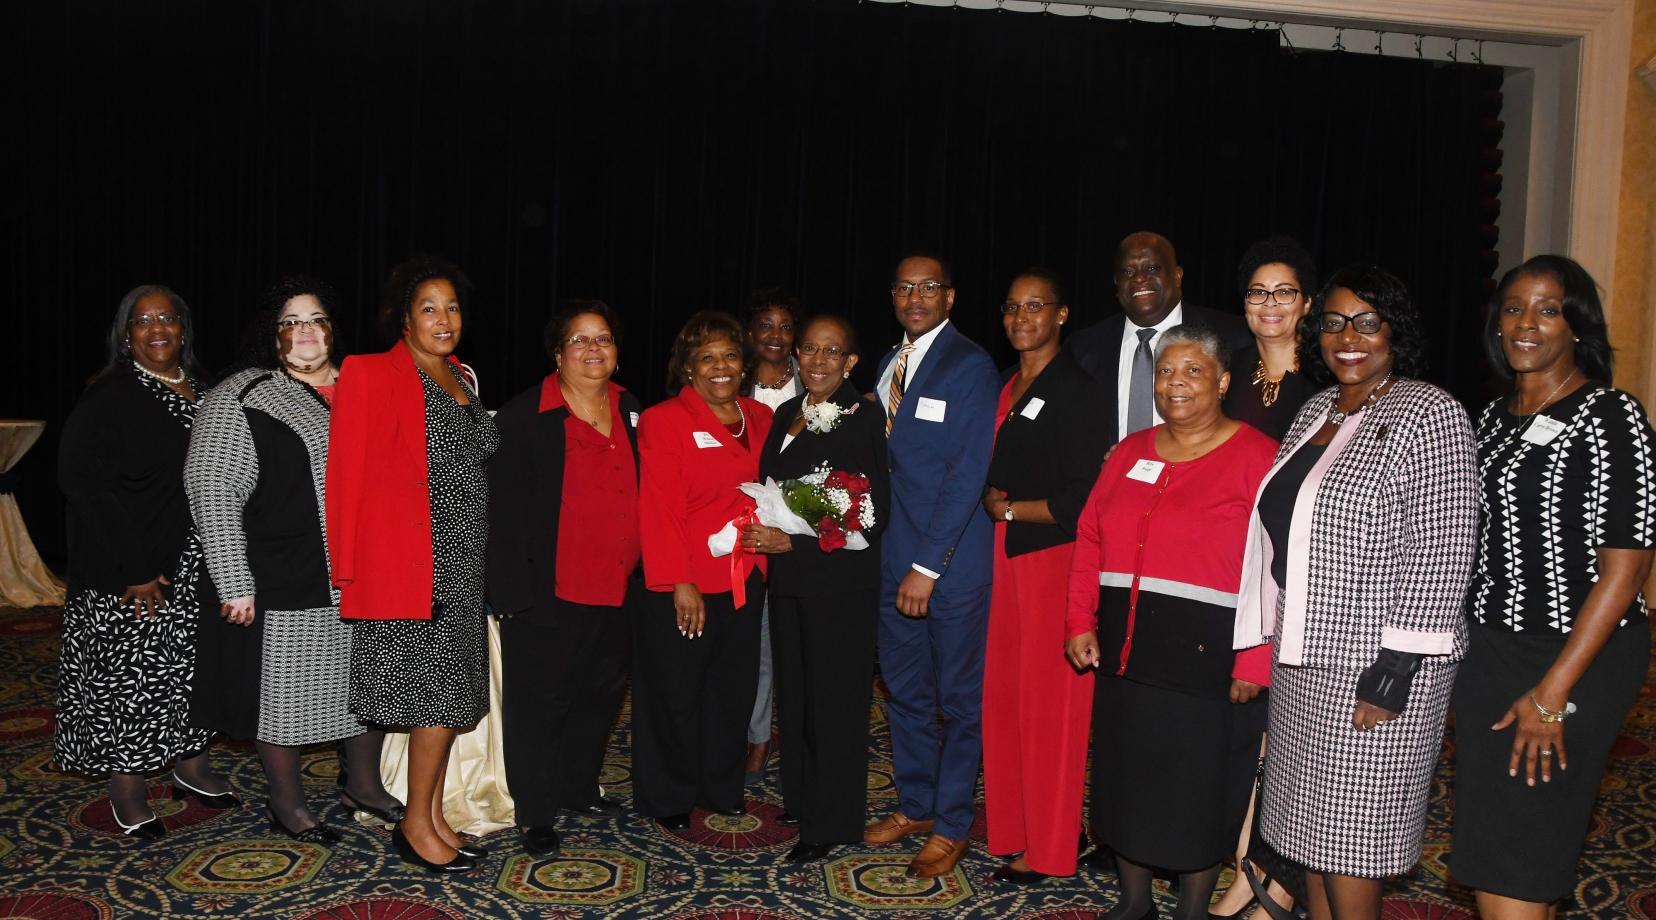 A healthy contingent of the Delaware State University community showed up to witness alumna Dr. Reba Hollingsworth's induction into the Hall of Fame of Delaware Women during a ceremony at Dover Downs Hotel & Casino.